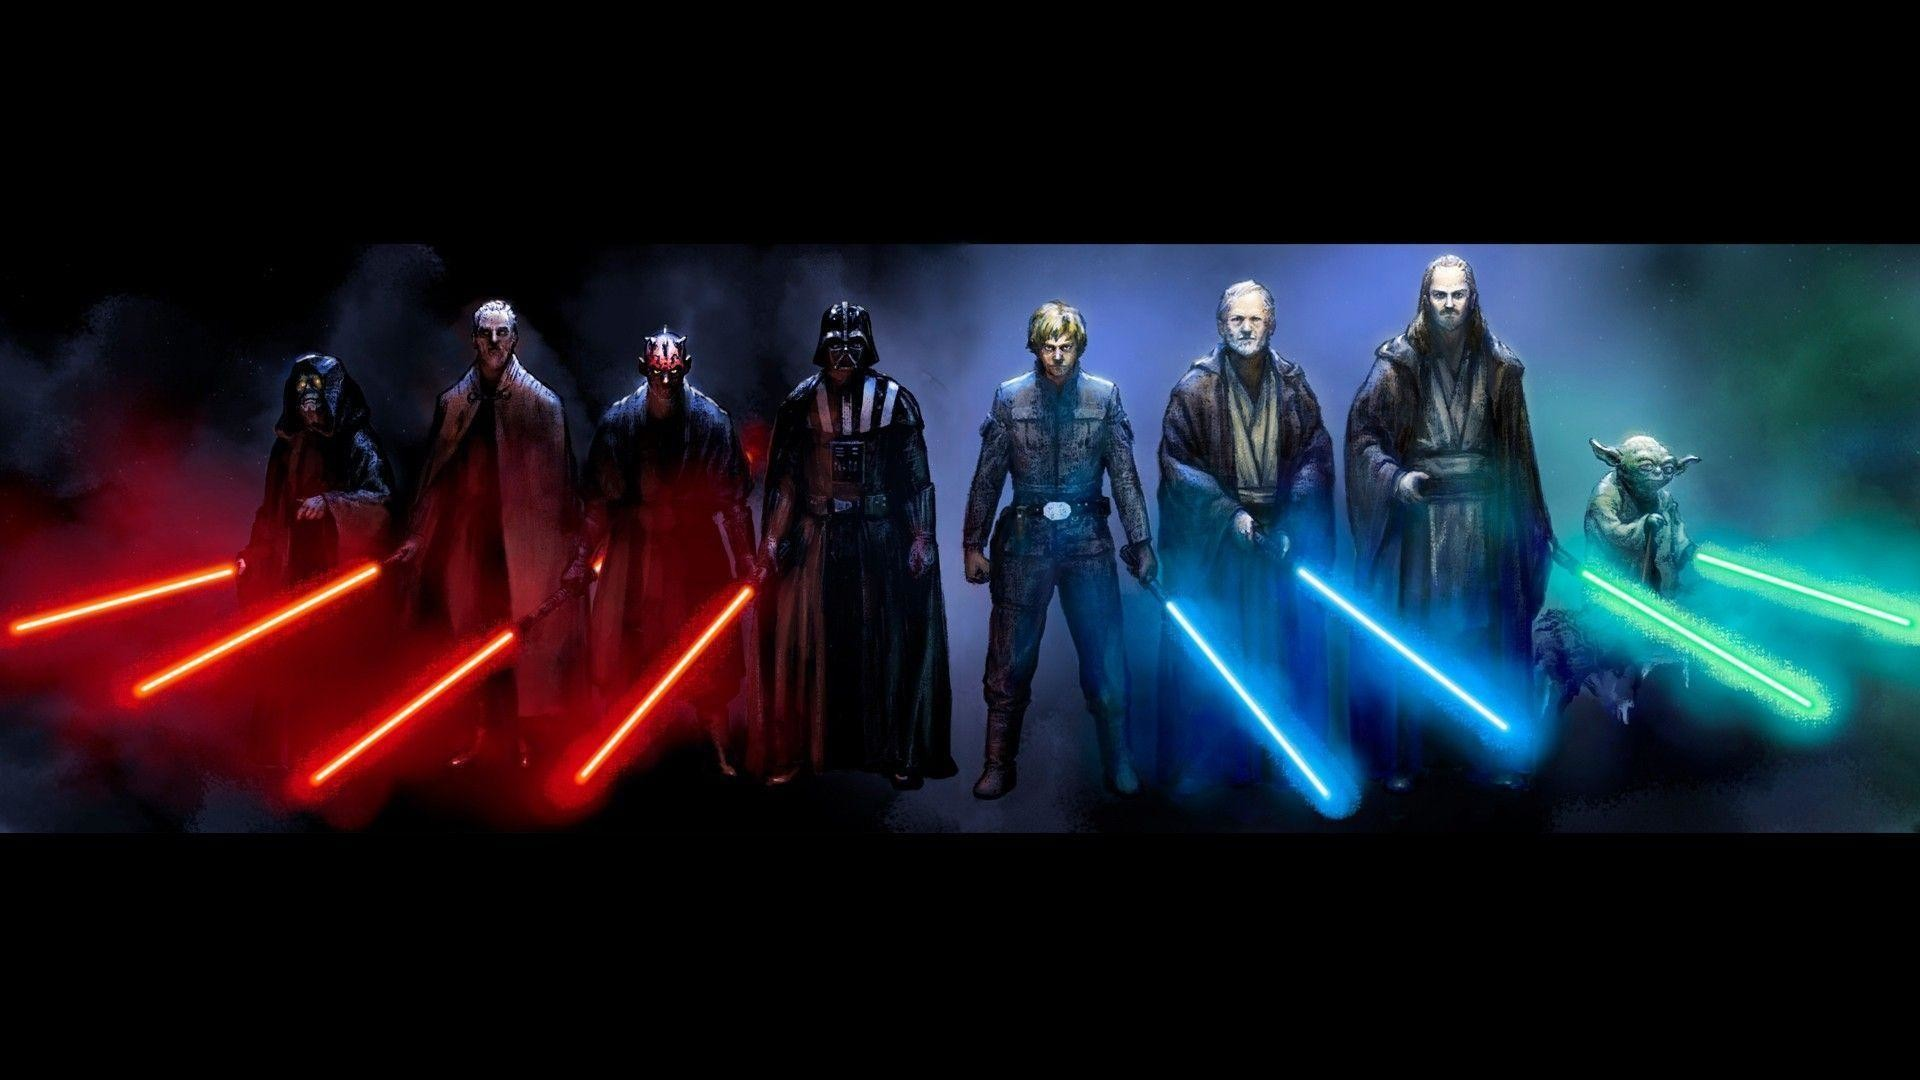 Wallpapers For > Ps3 Wallpapers 1080p Star Wars